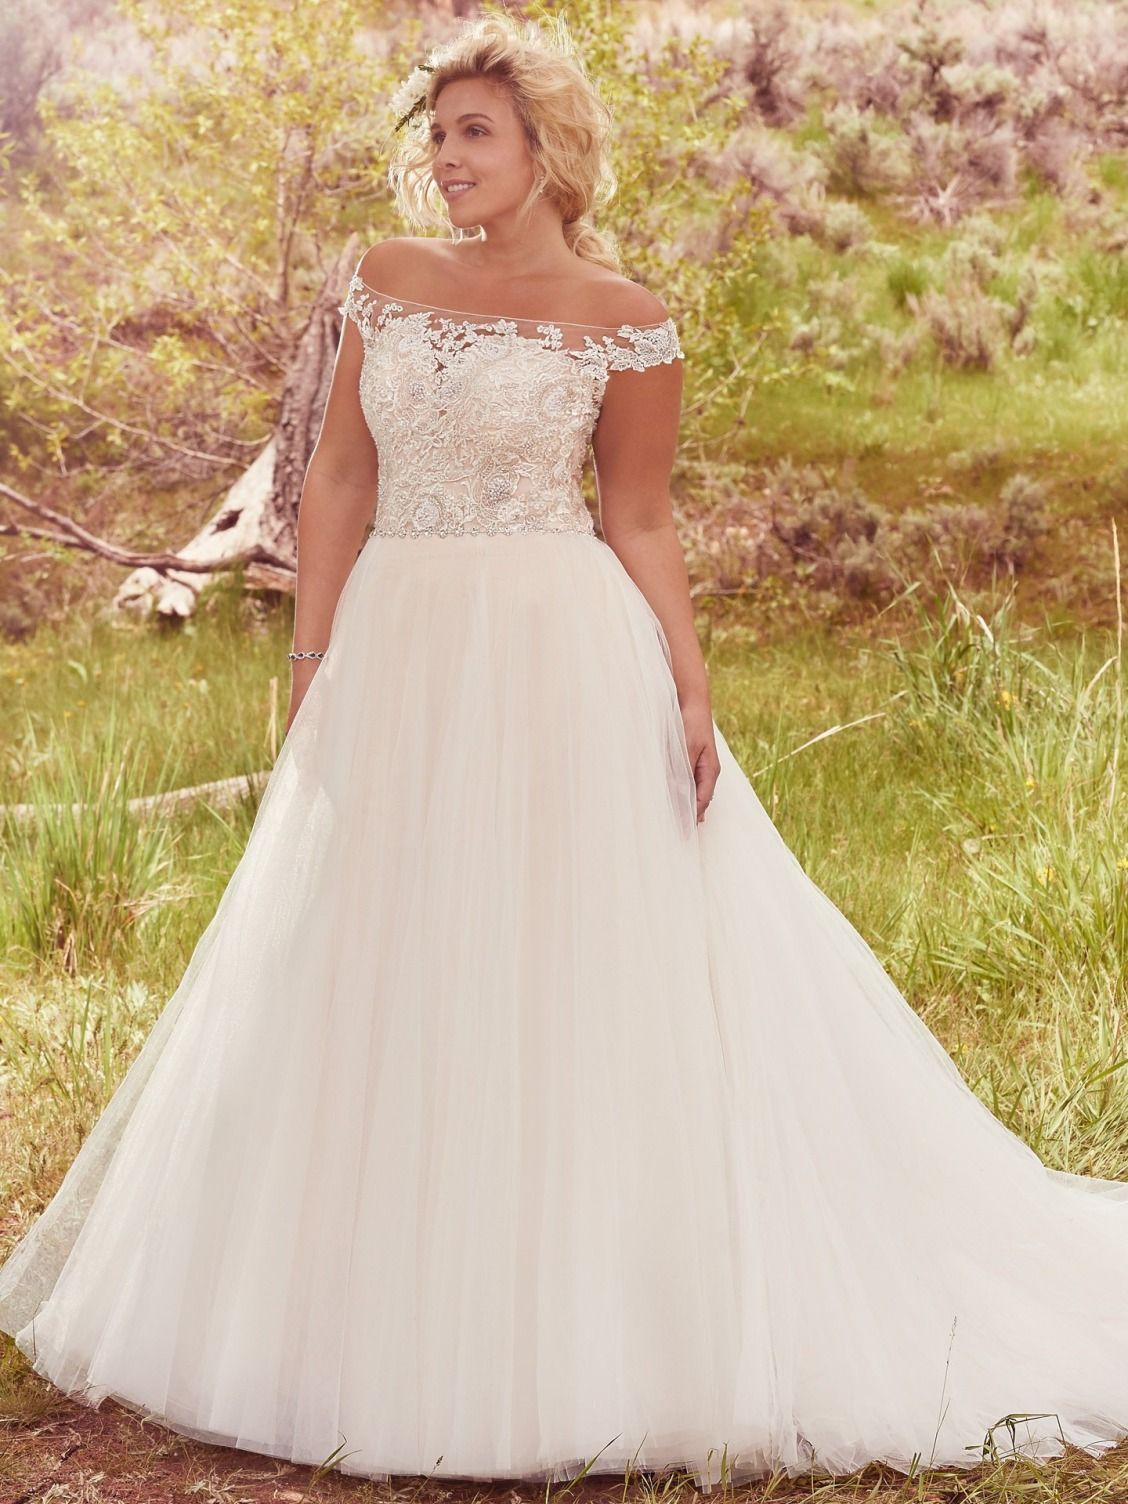 ... delicate illusion off-the-shoulder neckline coupled with a dramatic  illusion lace back create glamour in this alluring ball gown plus size wedding  dress ... 0cebaa5c7025